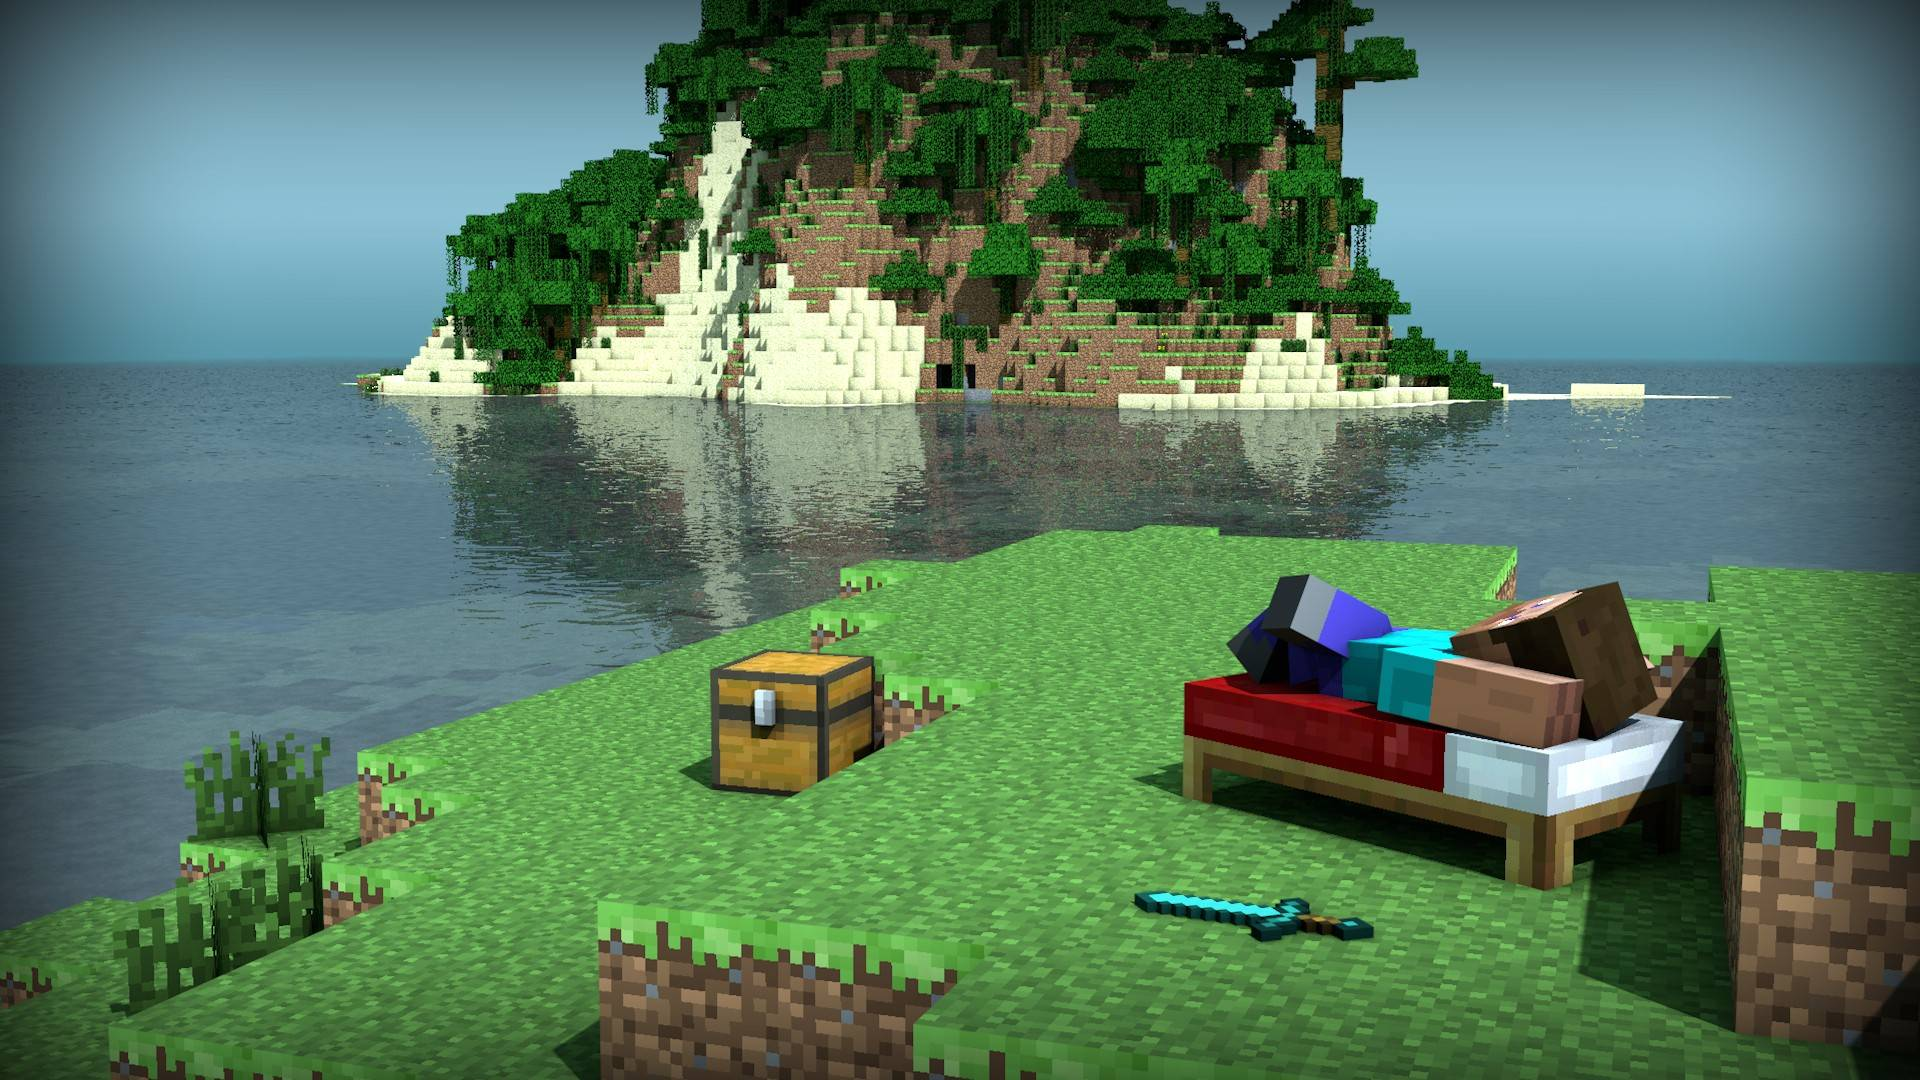 Minecraft Wallpaper Awesome Minecraft wallpaper Just awesome Steve 1920x1080